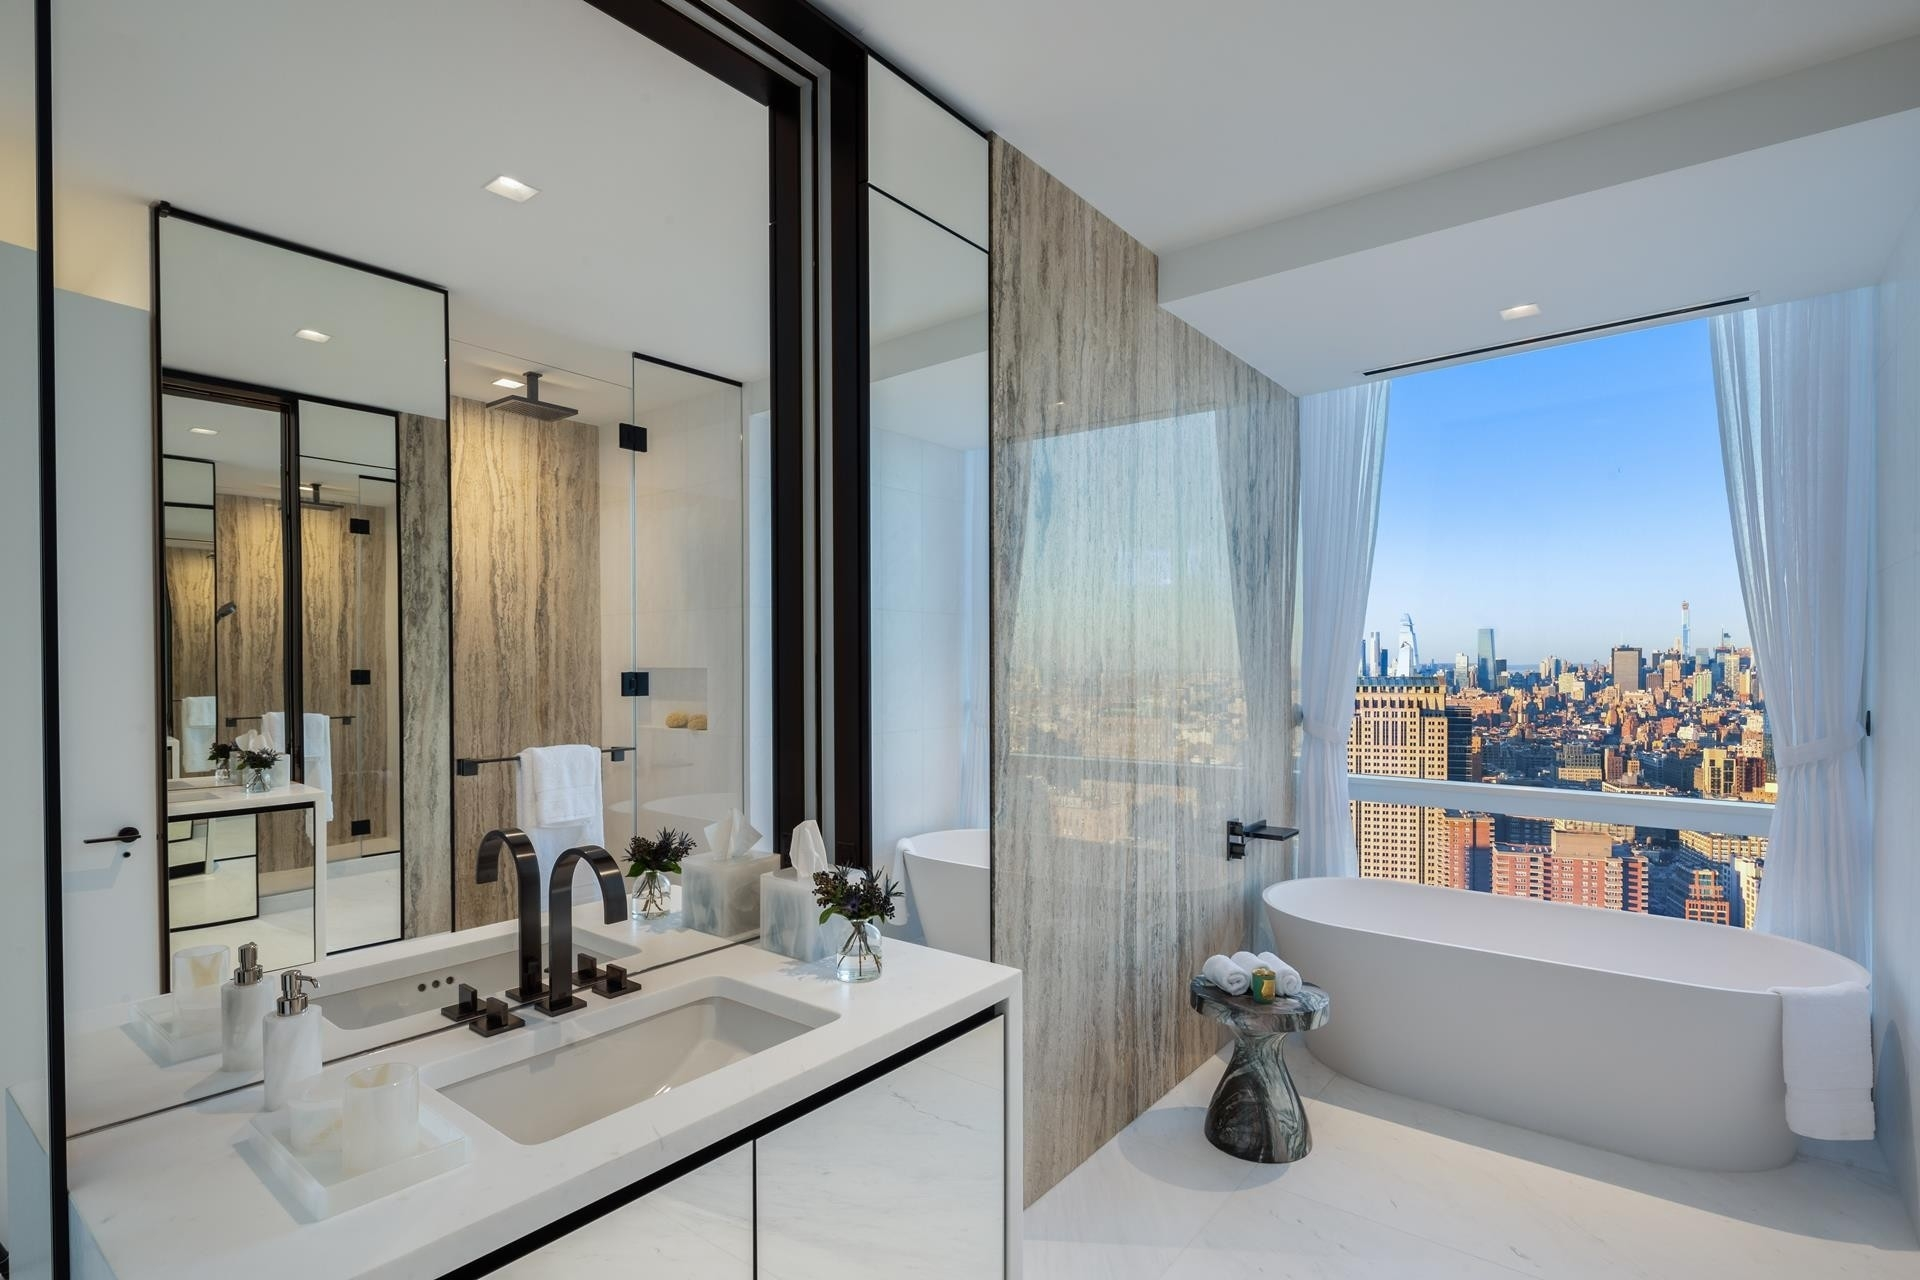 10. Condominiums for Sale at 111 MURRAY ST , 54WEST TriBeCa, New York, NY 10007